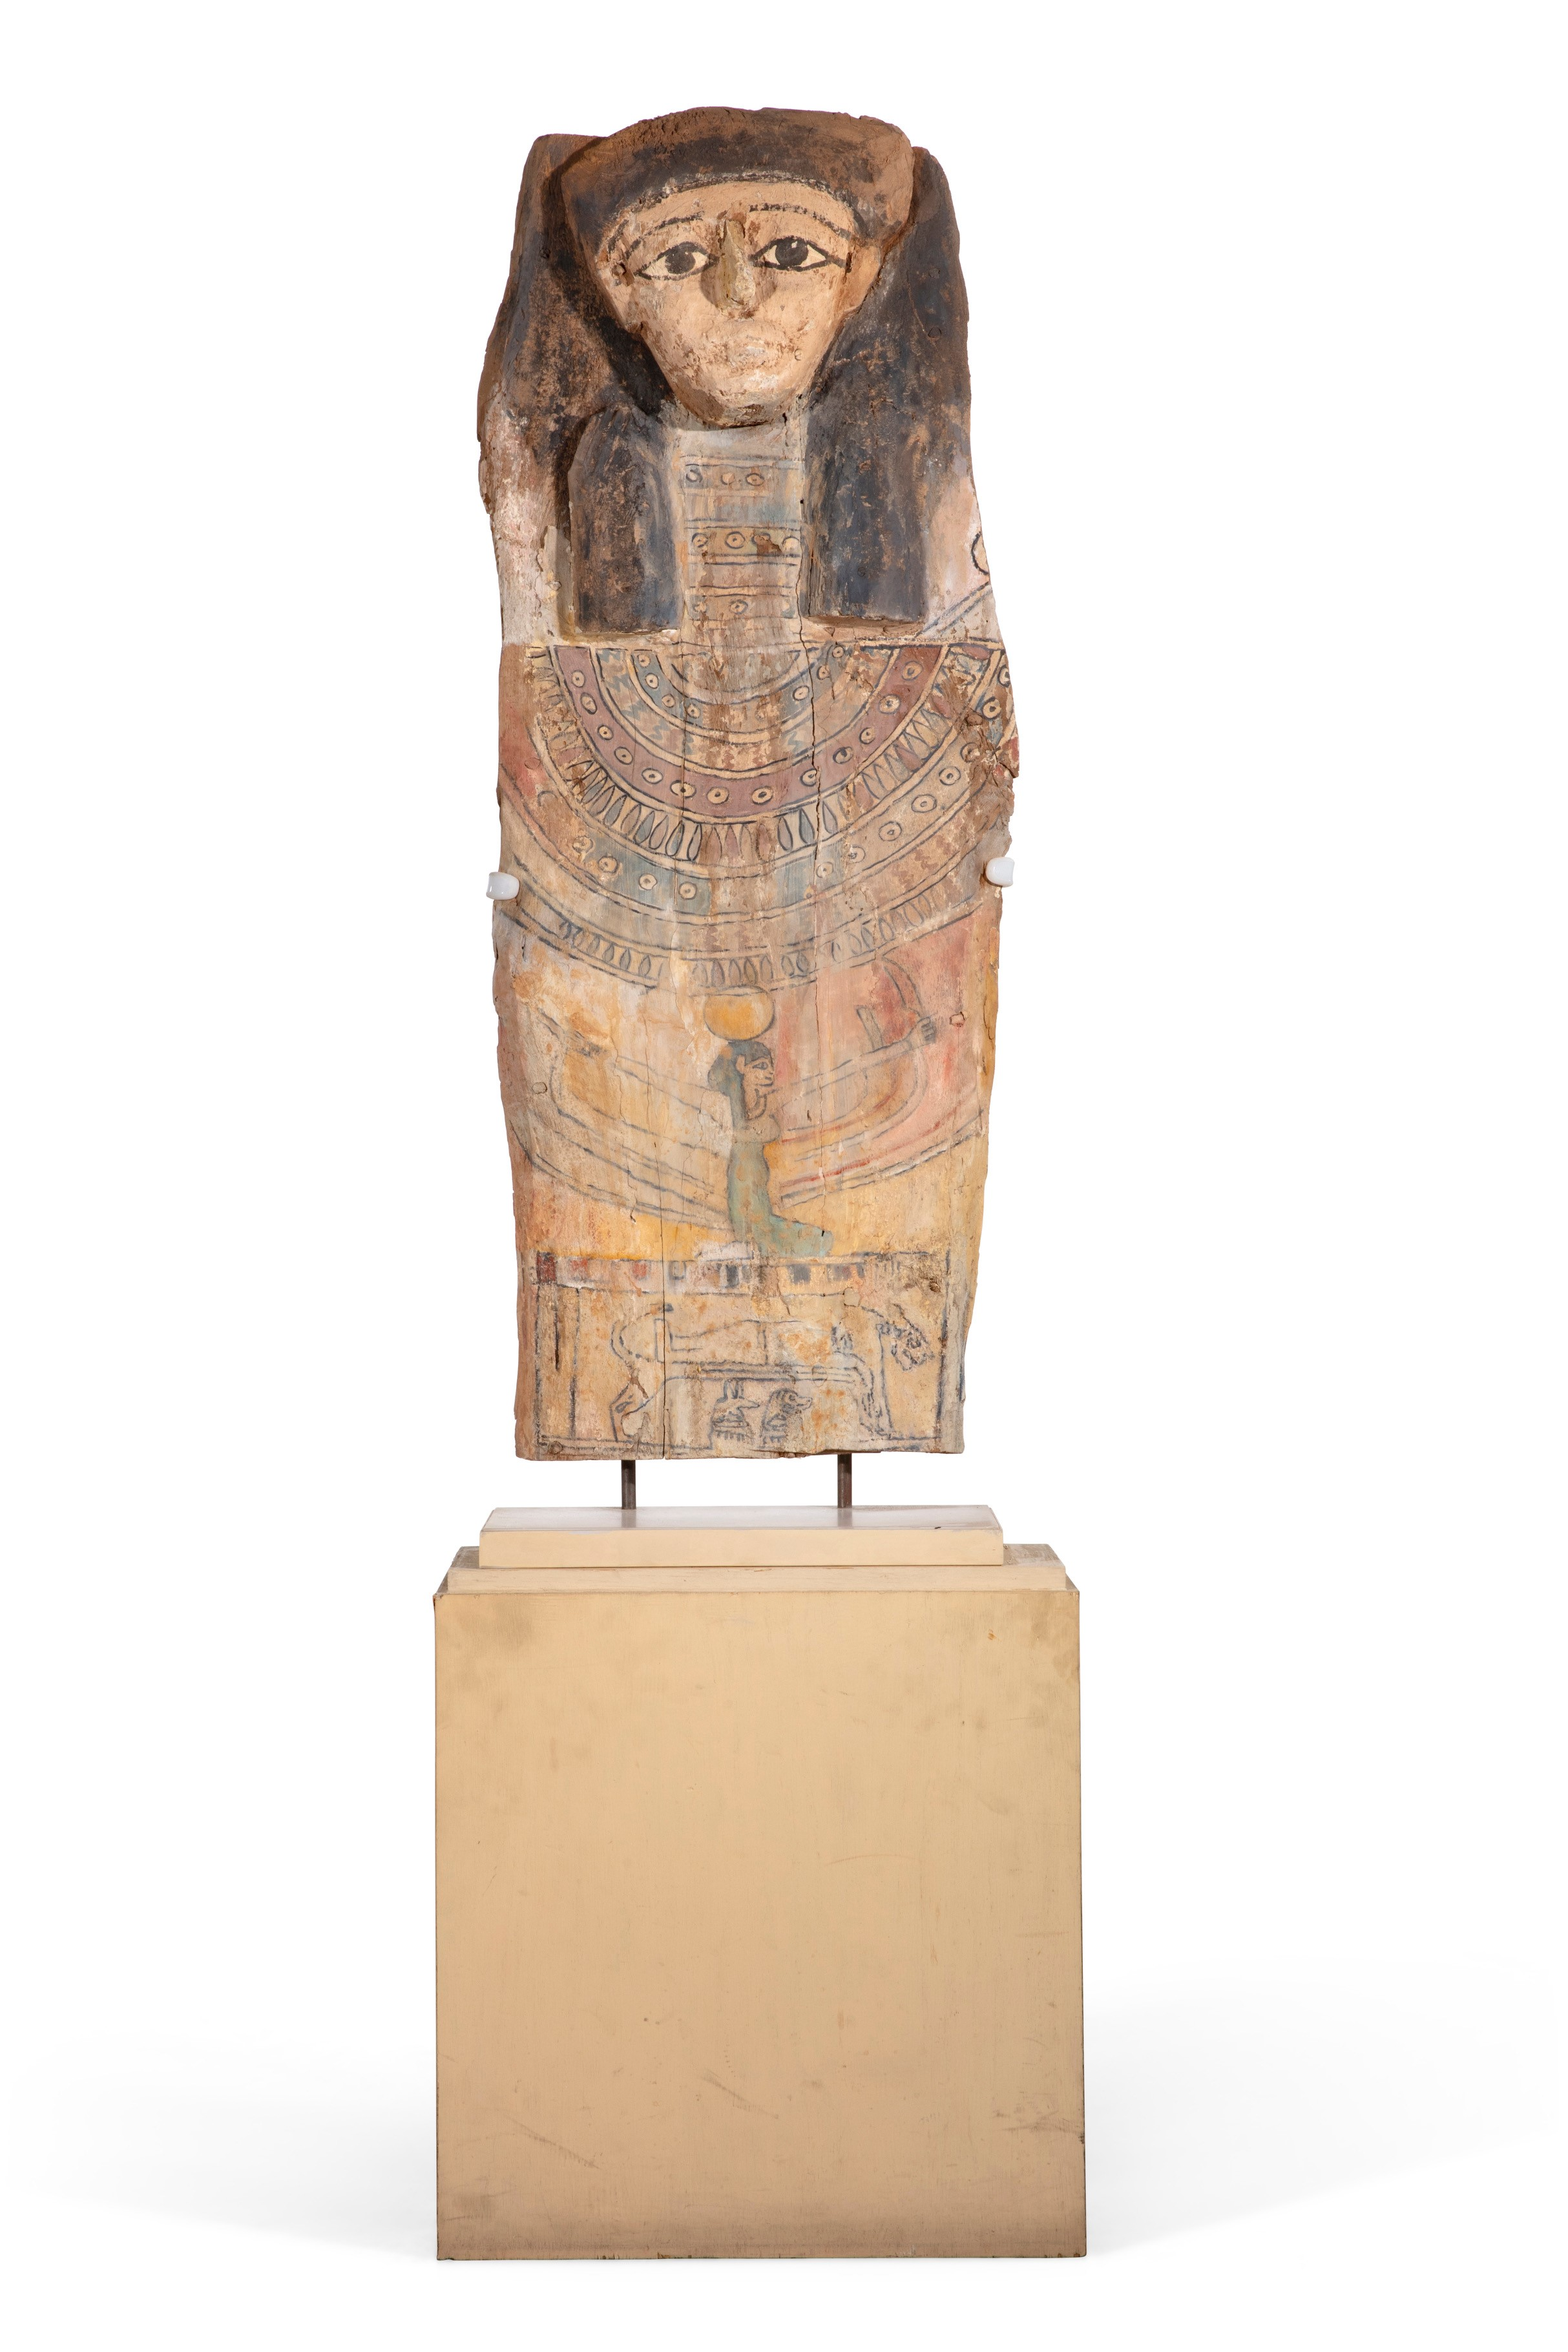 Egyptian polychrome decorated sarcophagus cover from the late Period to Ptolemaic Period, circa 664-30 BC, formerly in the collection of the late actor Larry Hagman. (est. $600-800).